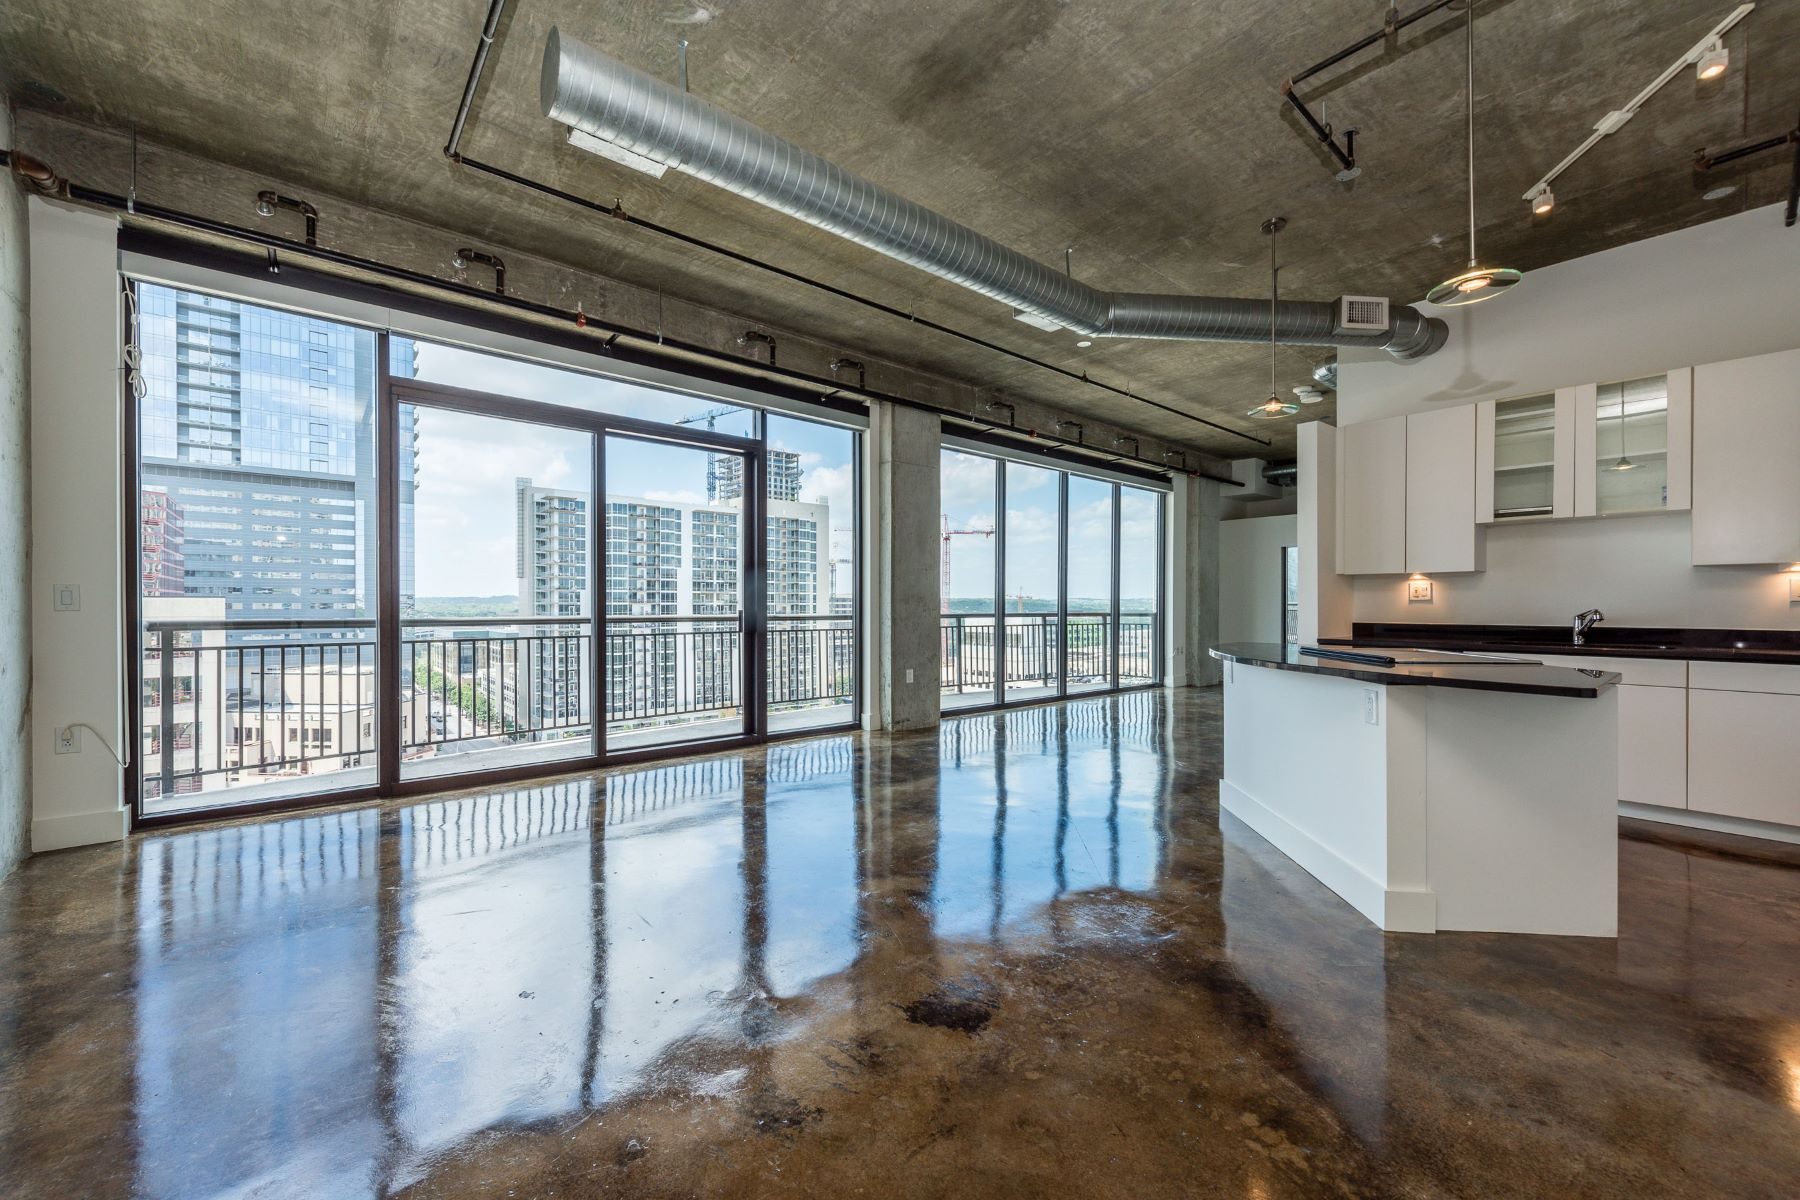 Other Residential for Rent at 311 W 5th St 1001, Austin Austin, Texas 78701 United States